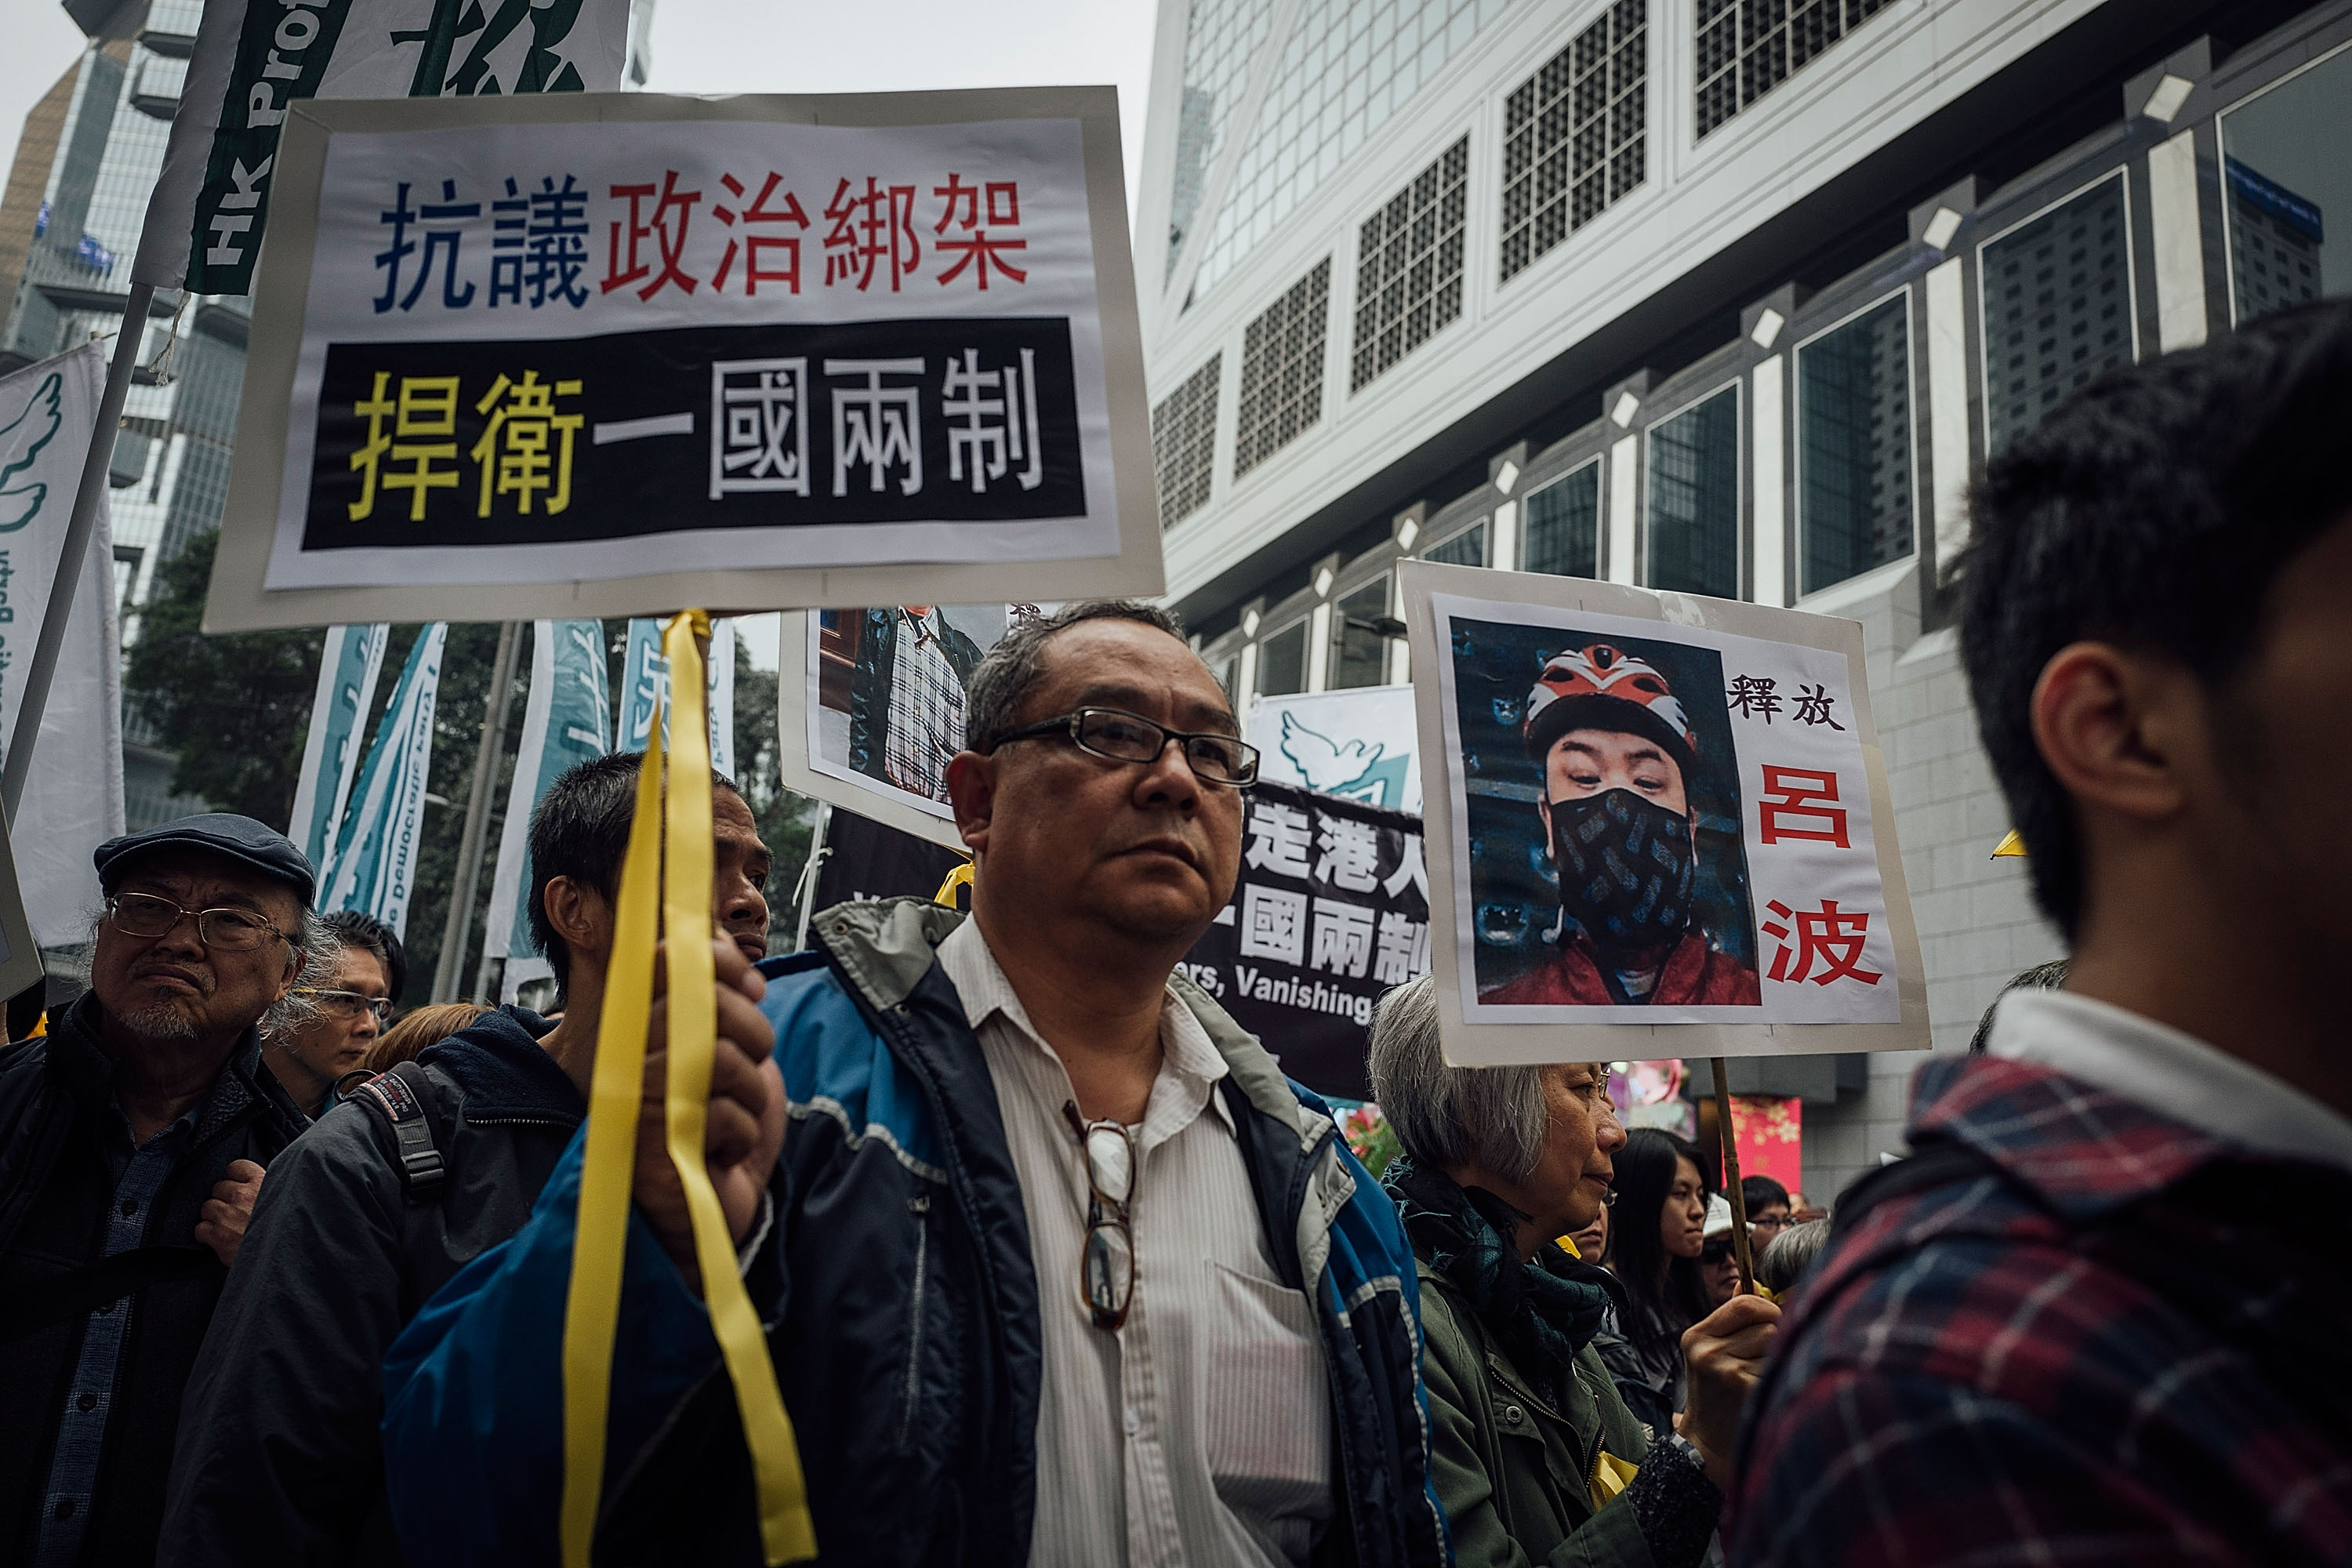 People hold placards and shout slogans as they take part in a rally on a street on Jan. 10, 2016, in Hong Kong. The disappearance of five Hong Kong booksellers, including U.K. passport holder Lee Bo, has sent shivers through Hong Kong as anxiety grows that Chinese control over the city is tightening